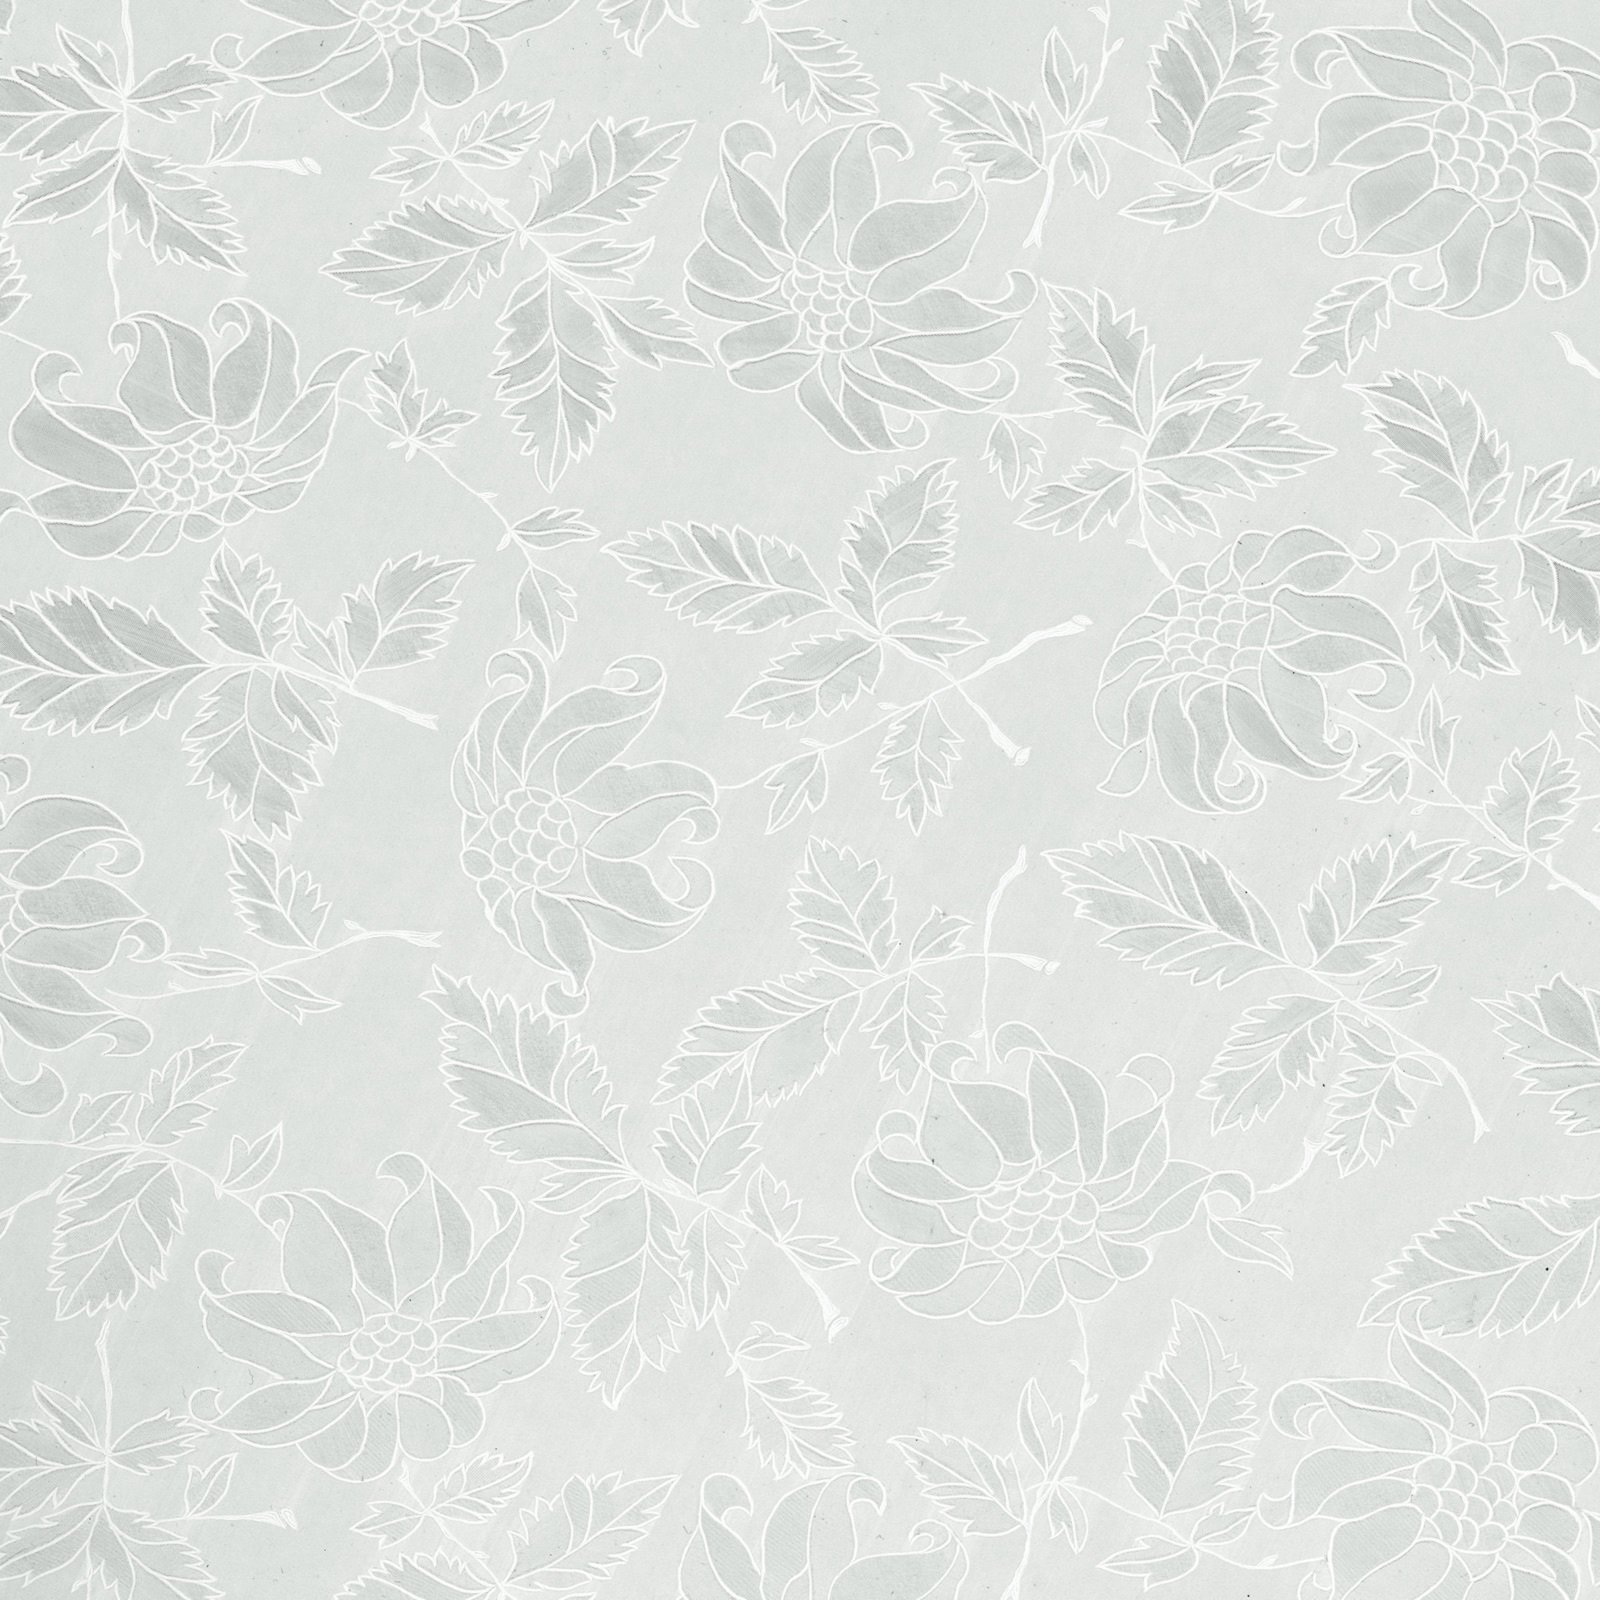 D c fix glasfolie damast blumen design 45x200m cm for Glas klebefolie